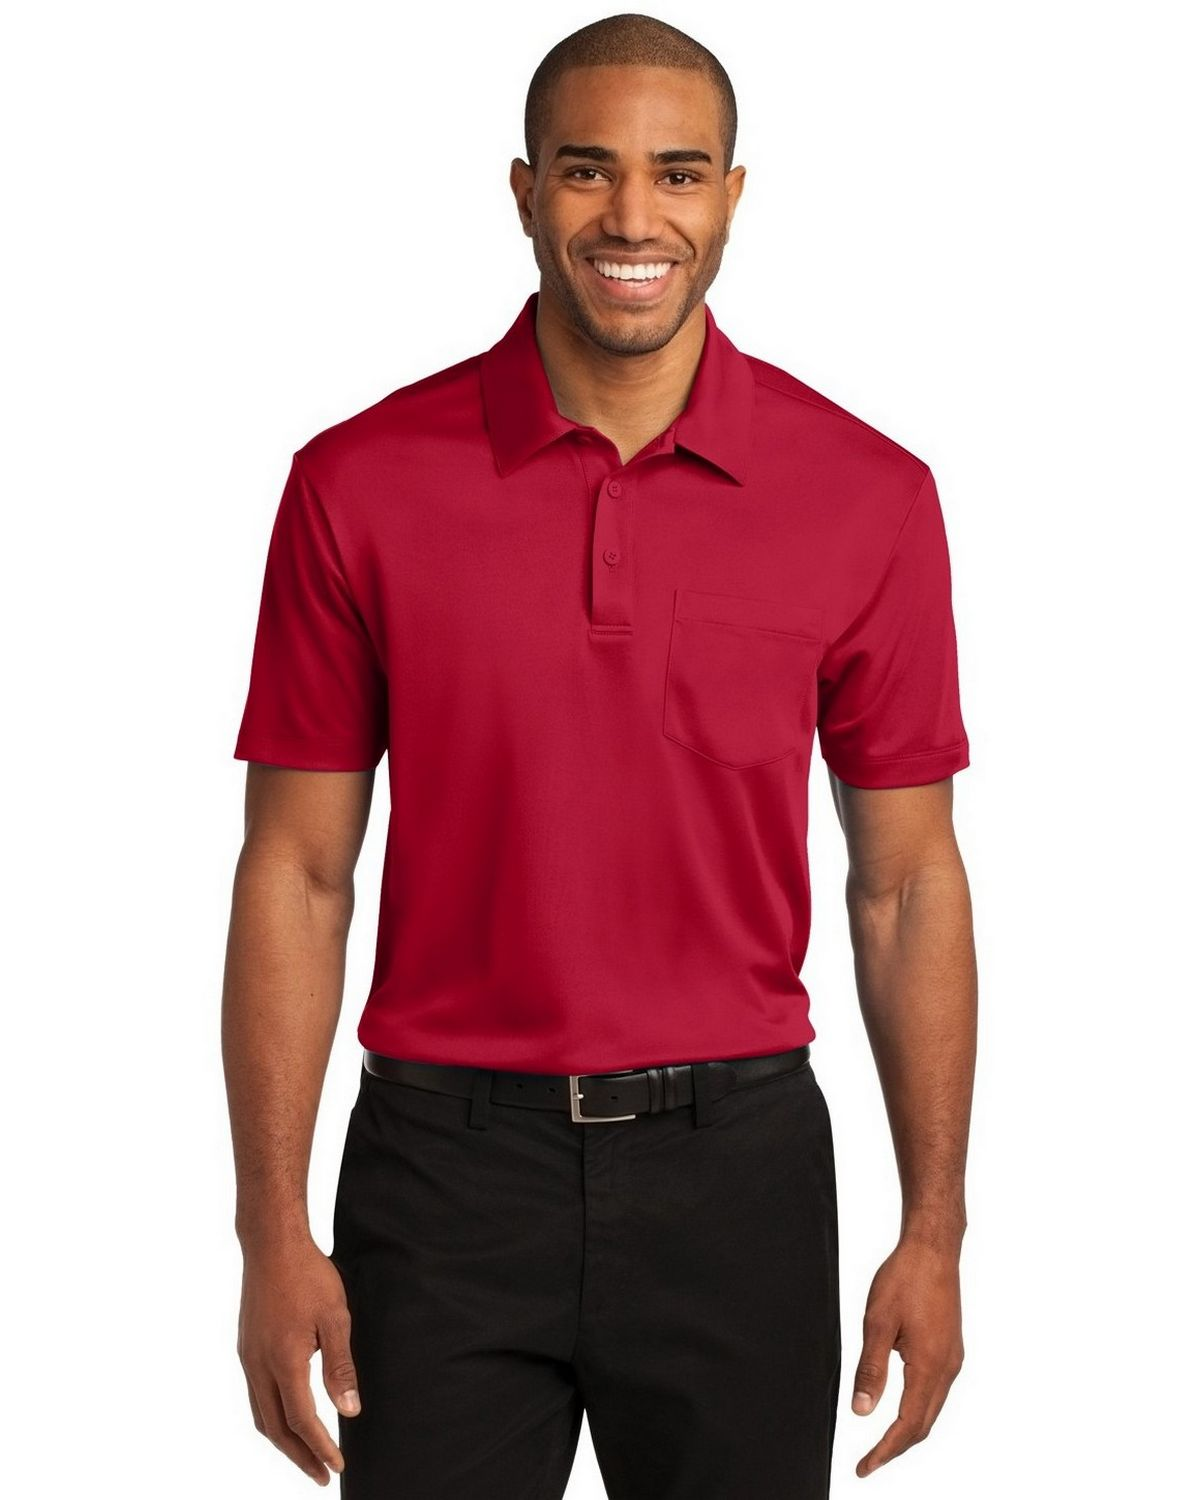 Port Authority K540P Men's Silk Touch Performance Pocket Polo - Red - XS #silk